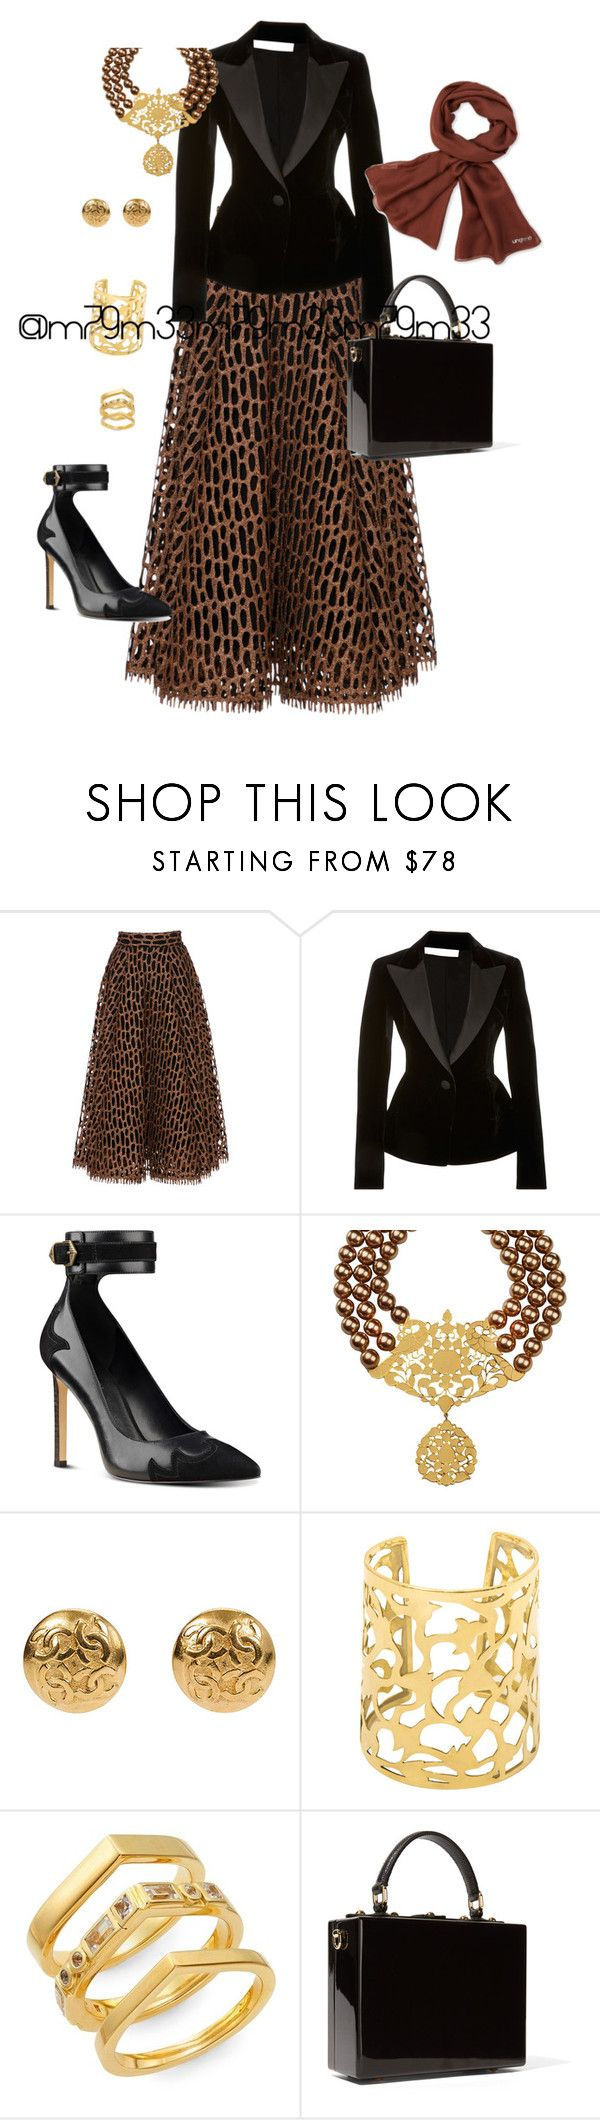 """""""Untitled #461"""" by m79m33 ❤ liked on Polyvore featuring Christian Siriano, Oscar de la Renta, Nine West, Elizabeth and James, Dolce&Gabbana and Emanuel Ungaro"""